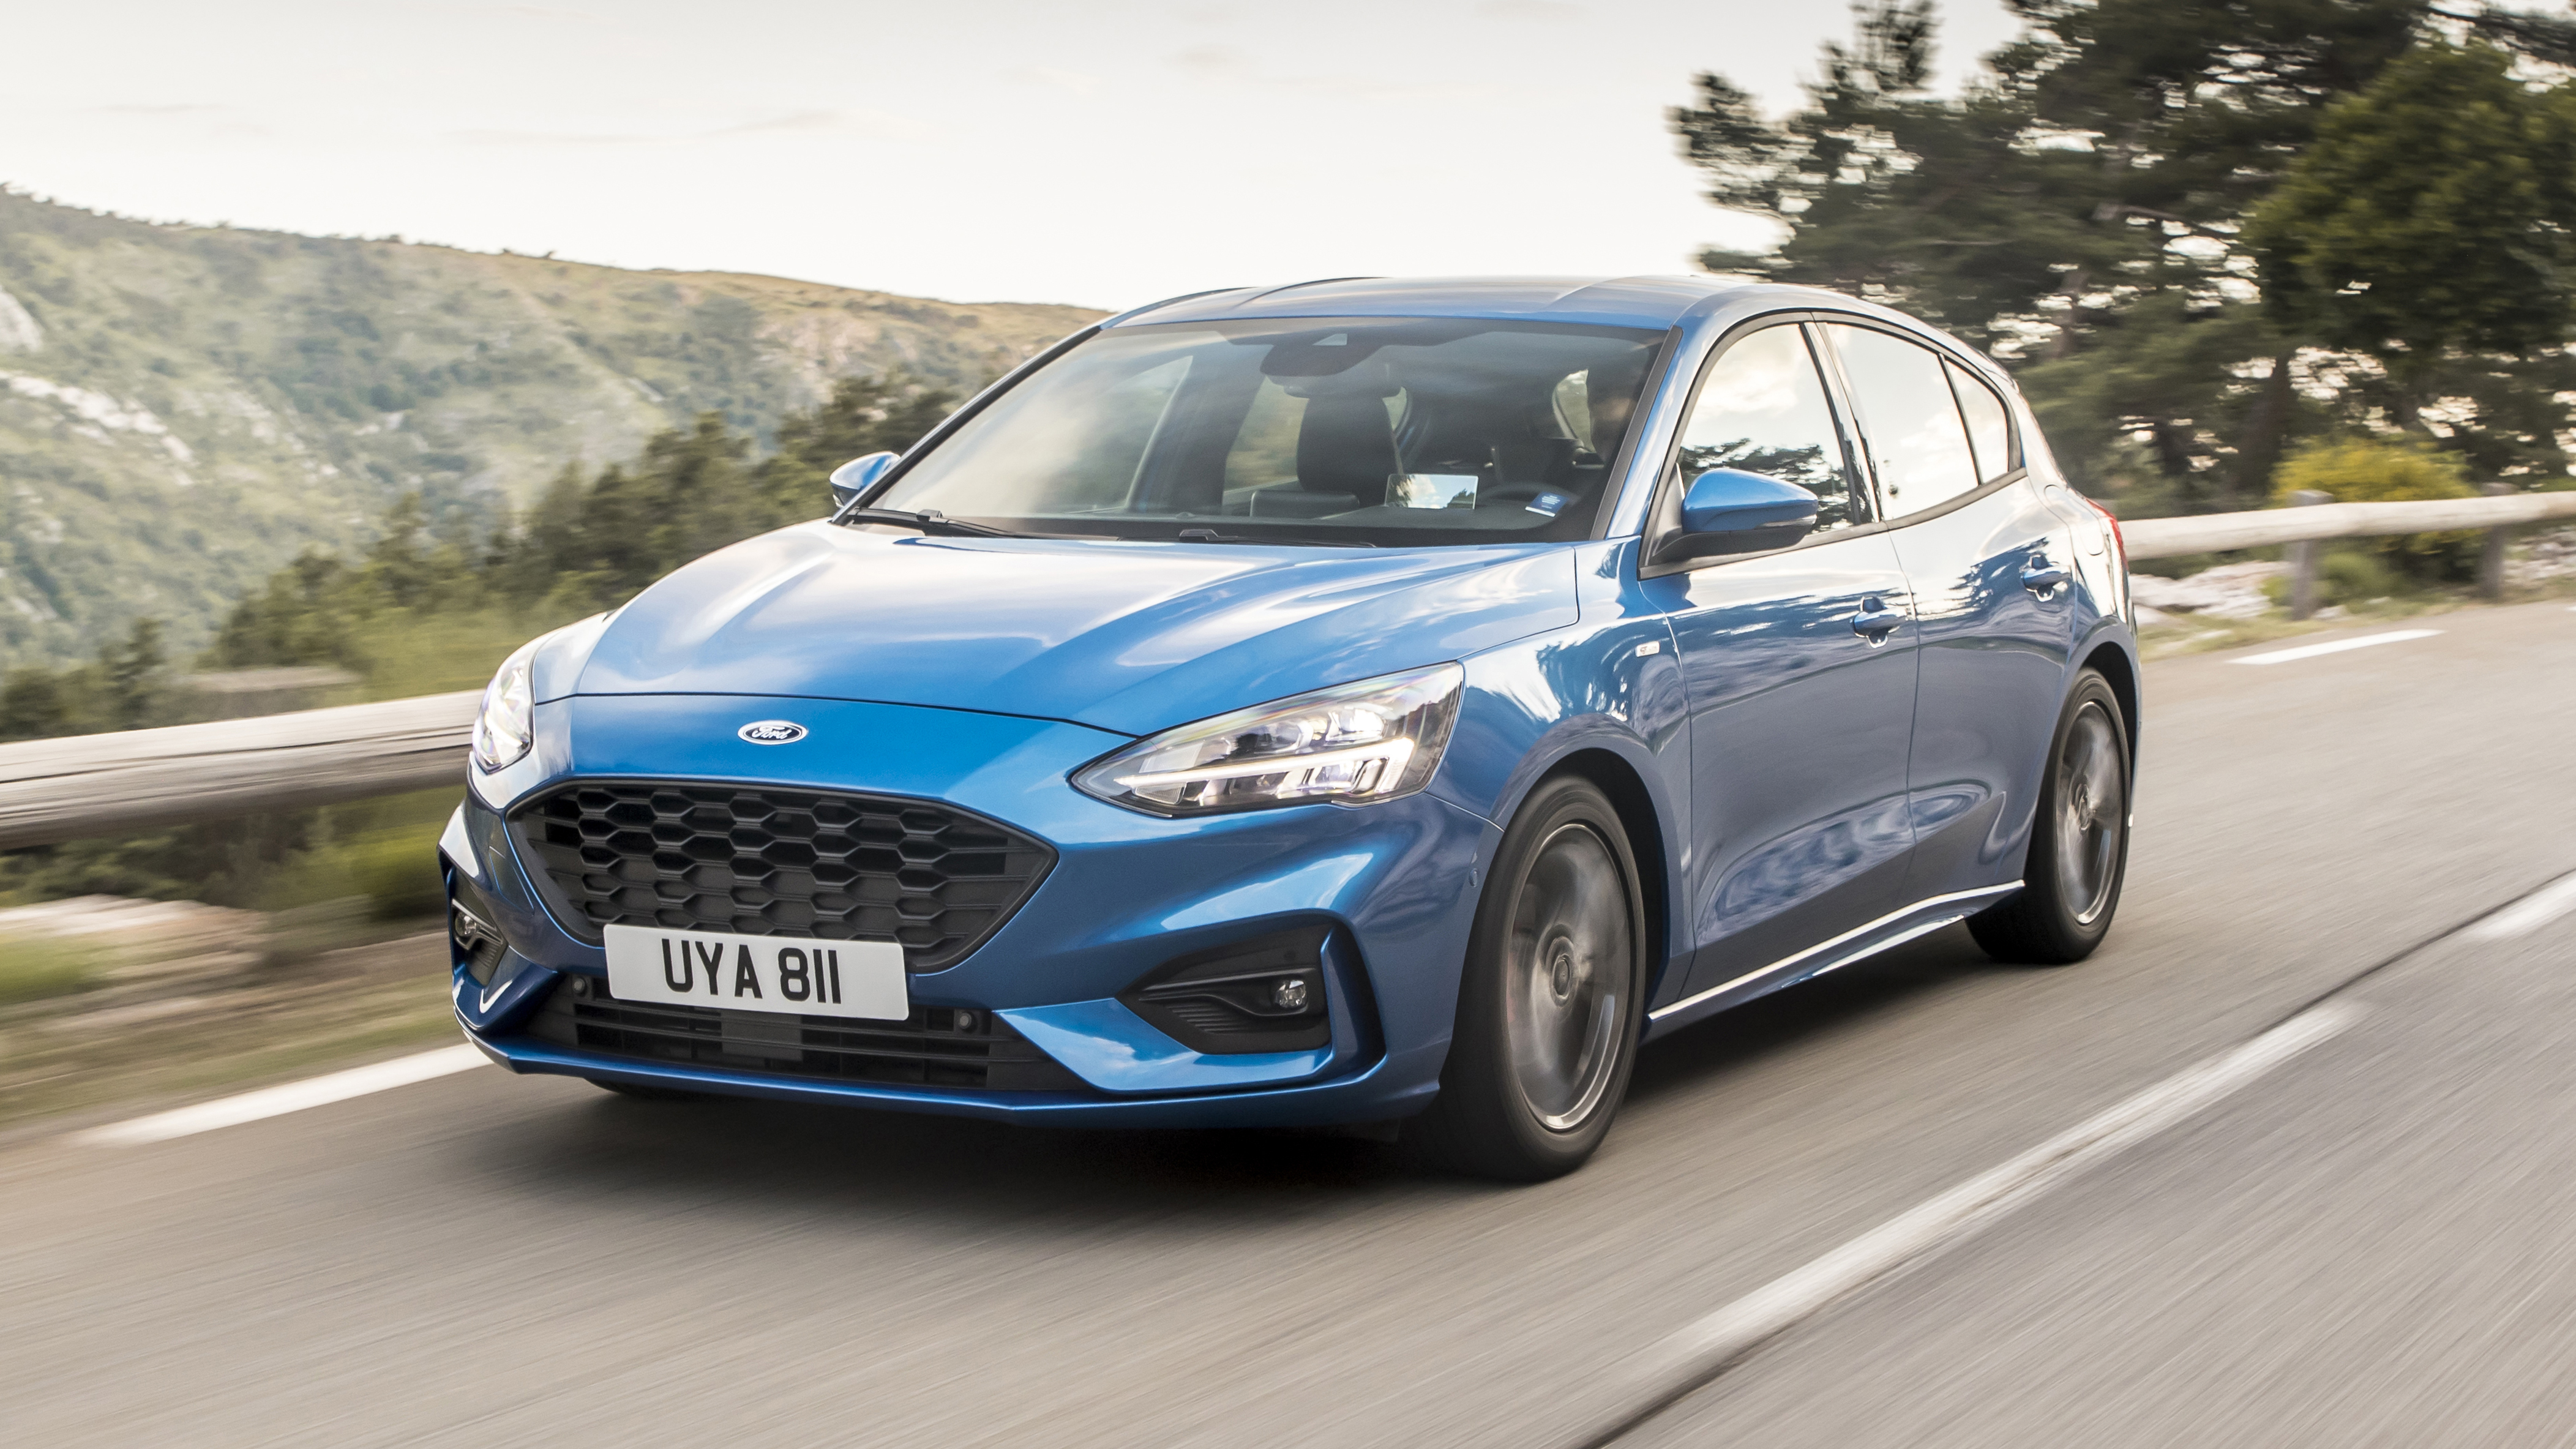 2018 ford focus st review top gear. Black Bedroom Furniture Sets. Home Design Ideas